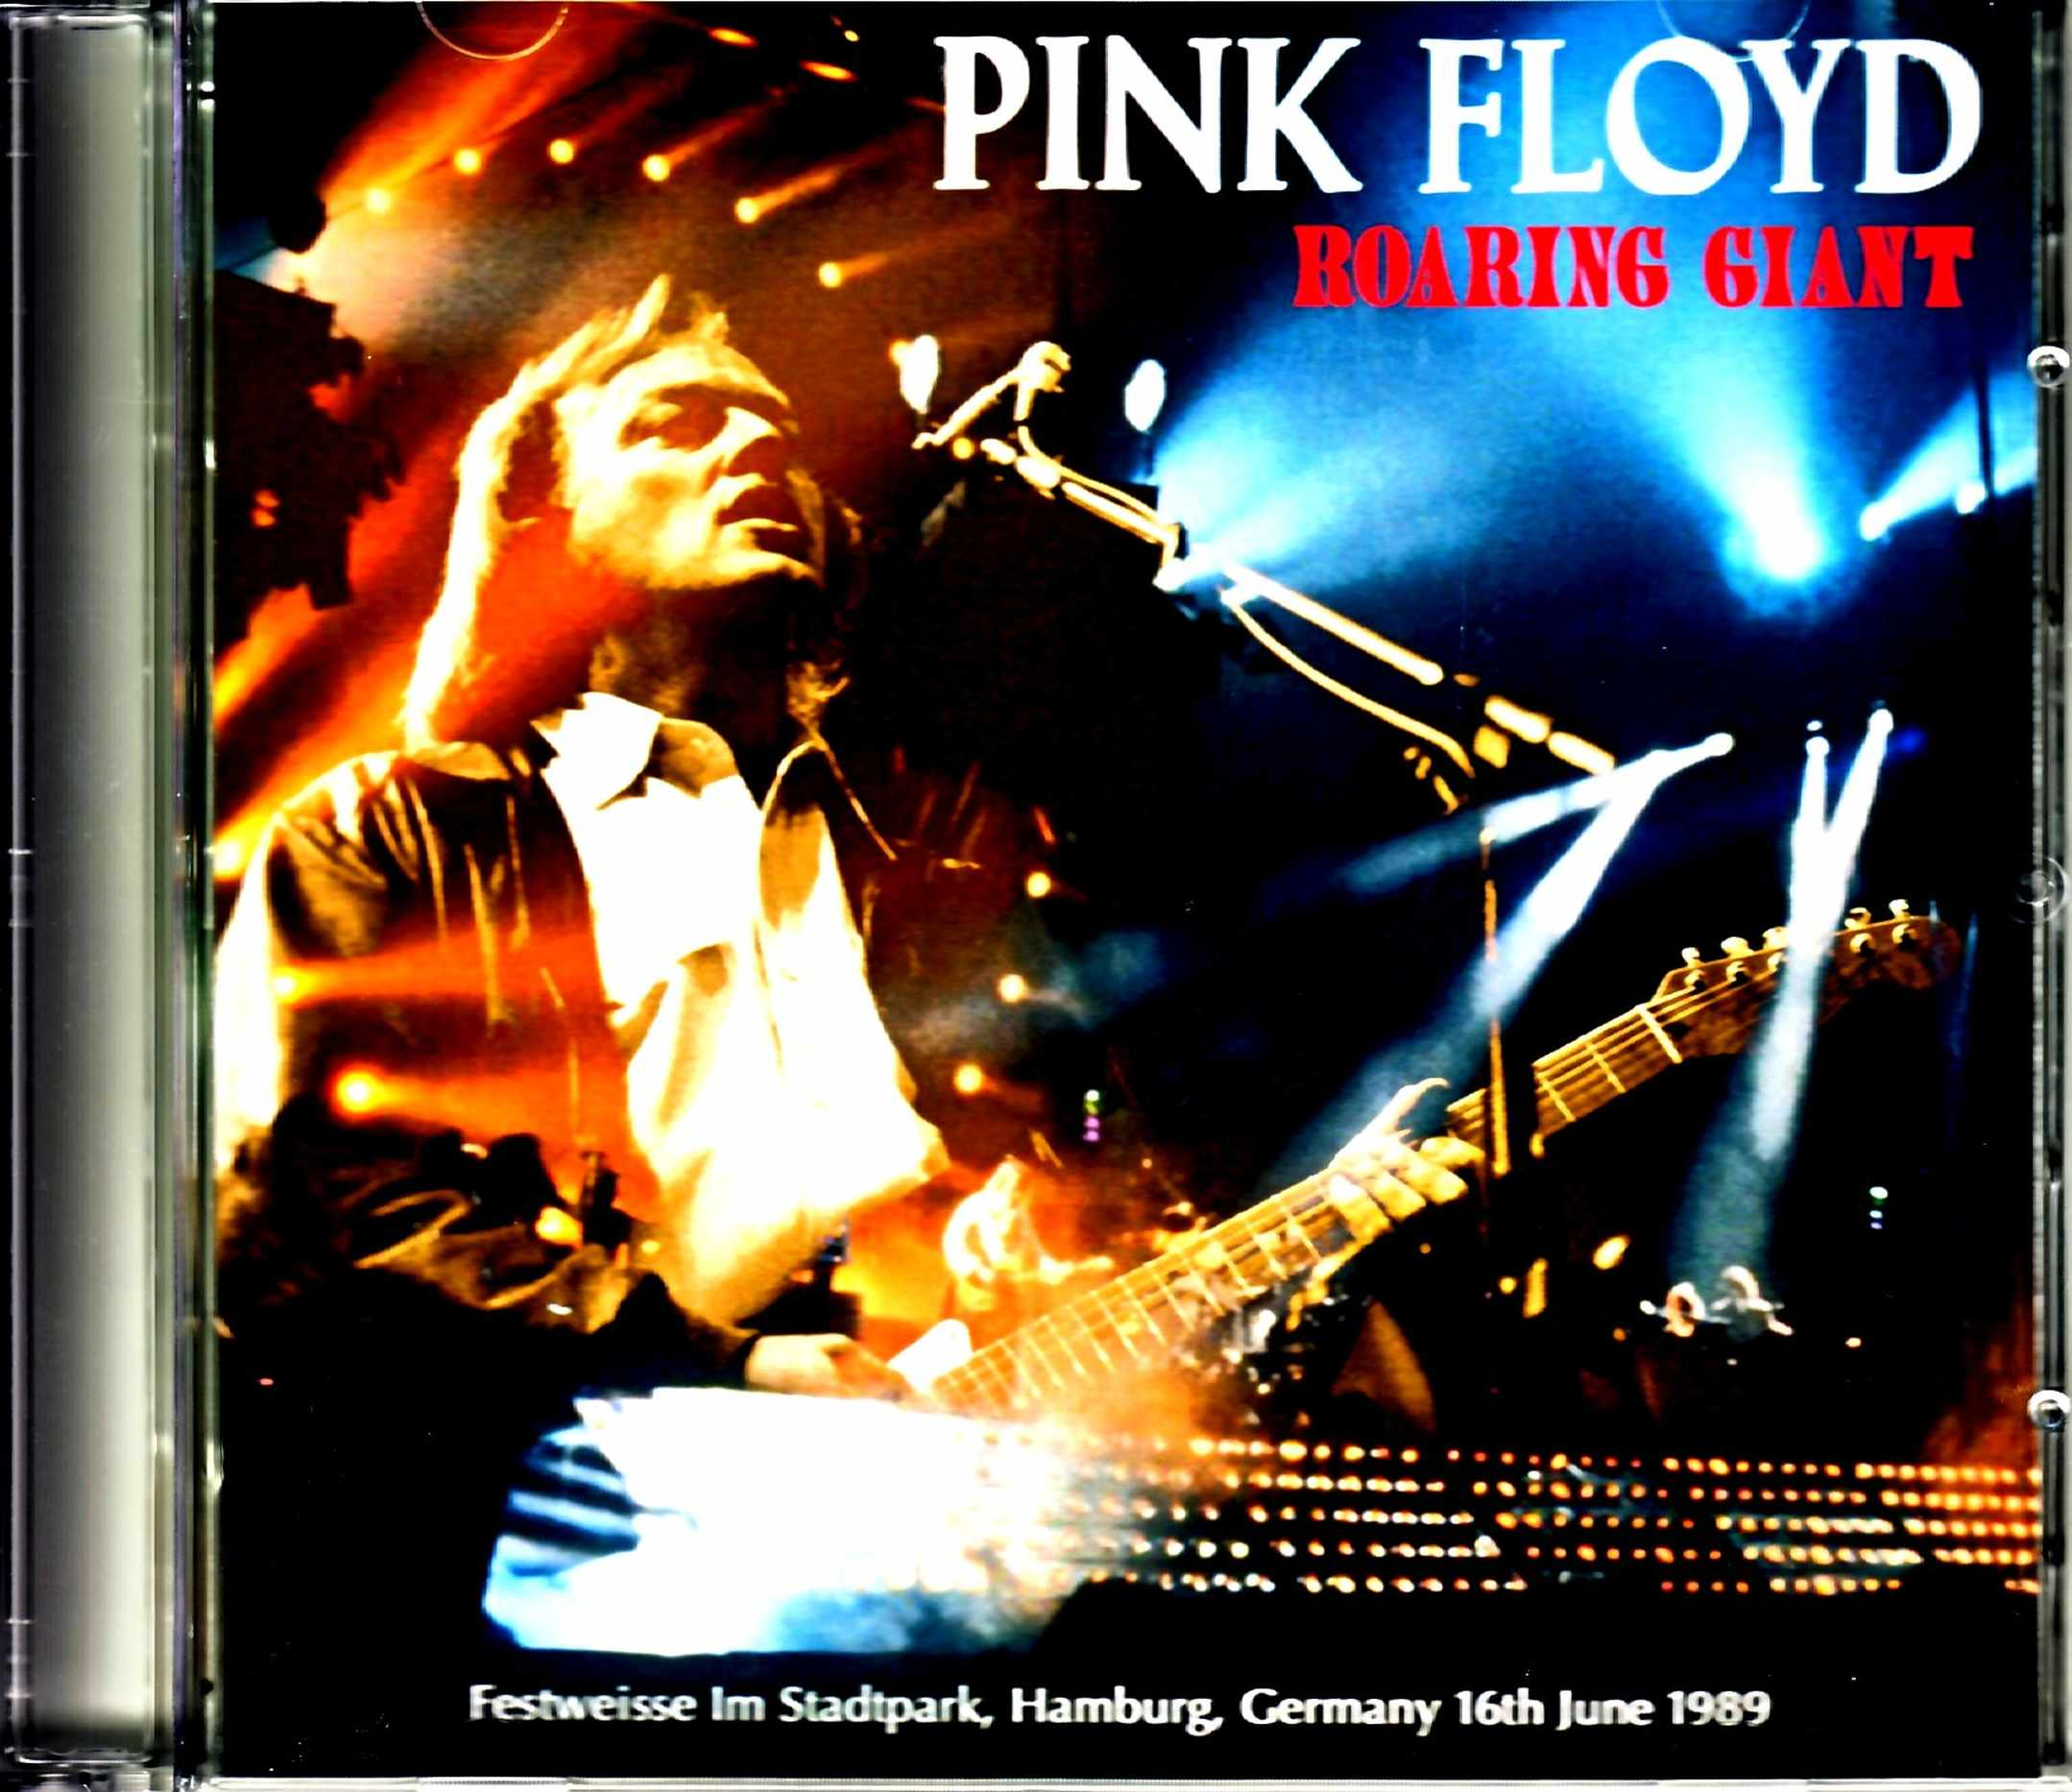 Pink Floyd ピンク・フロイド/Germany 6.16.1989 Complete